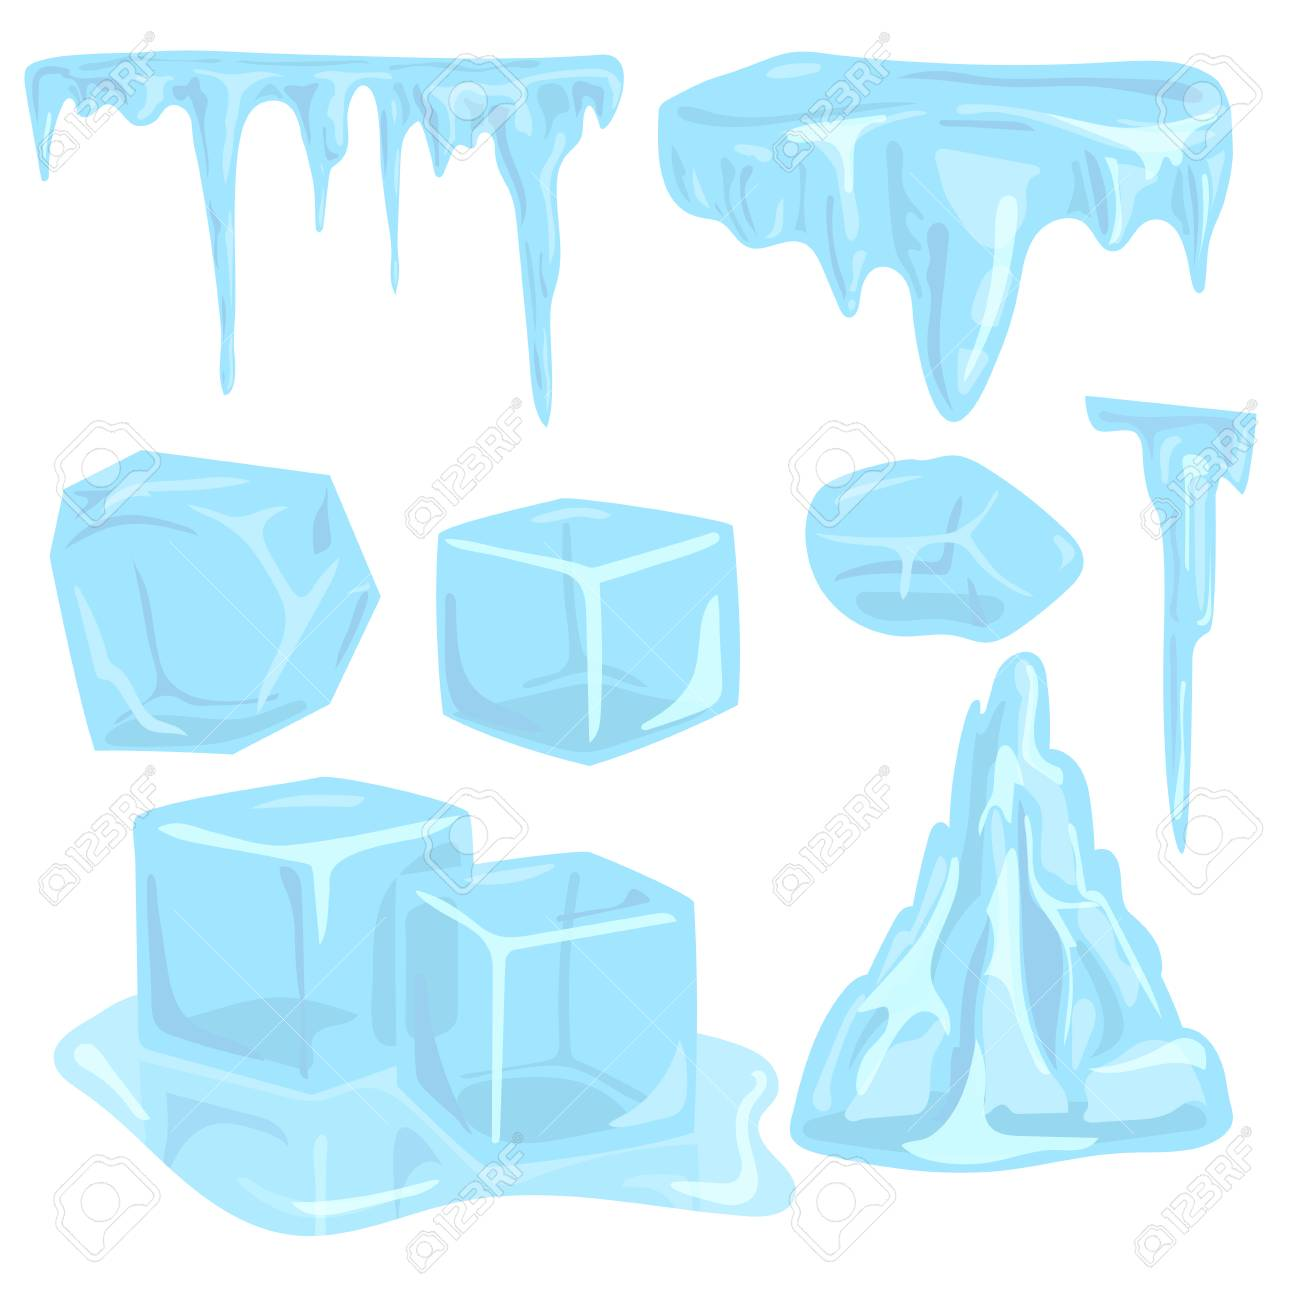 Ice caps snowdrifts icicles elements arctic snowy cold water winter decor vector illustration. - 87380212